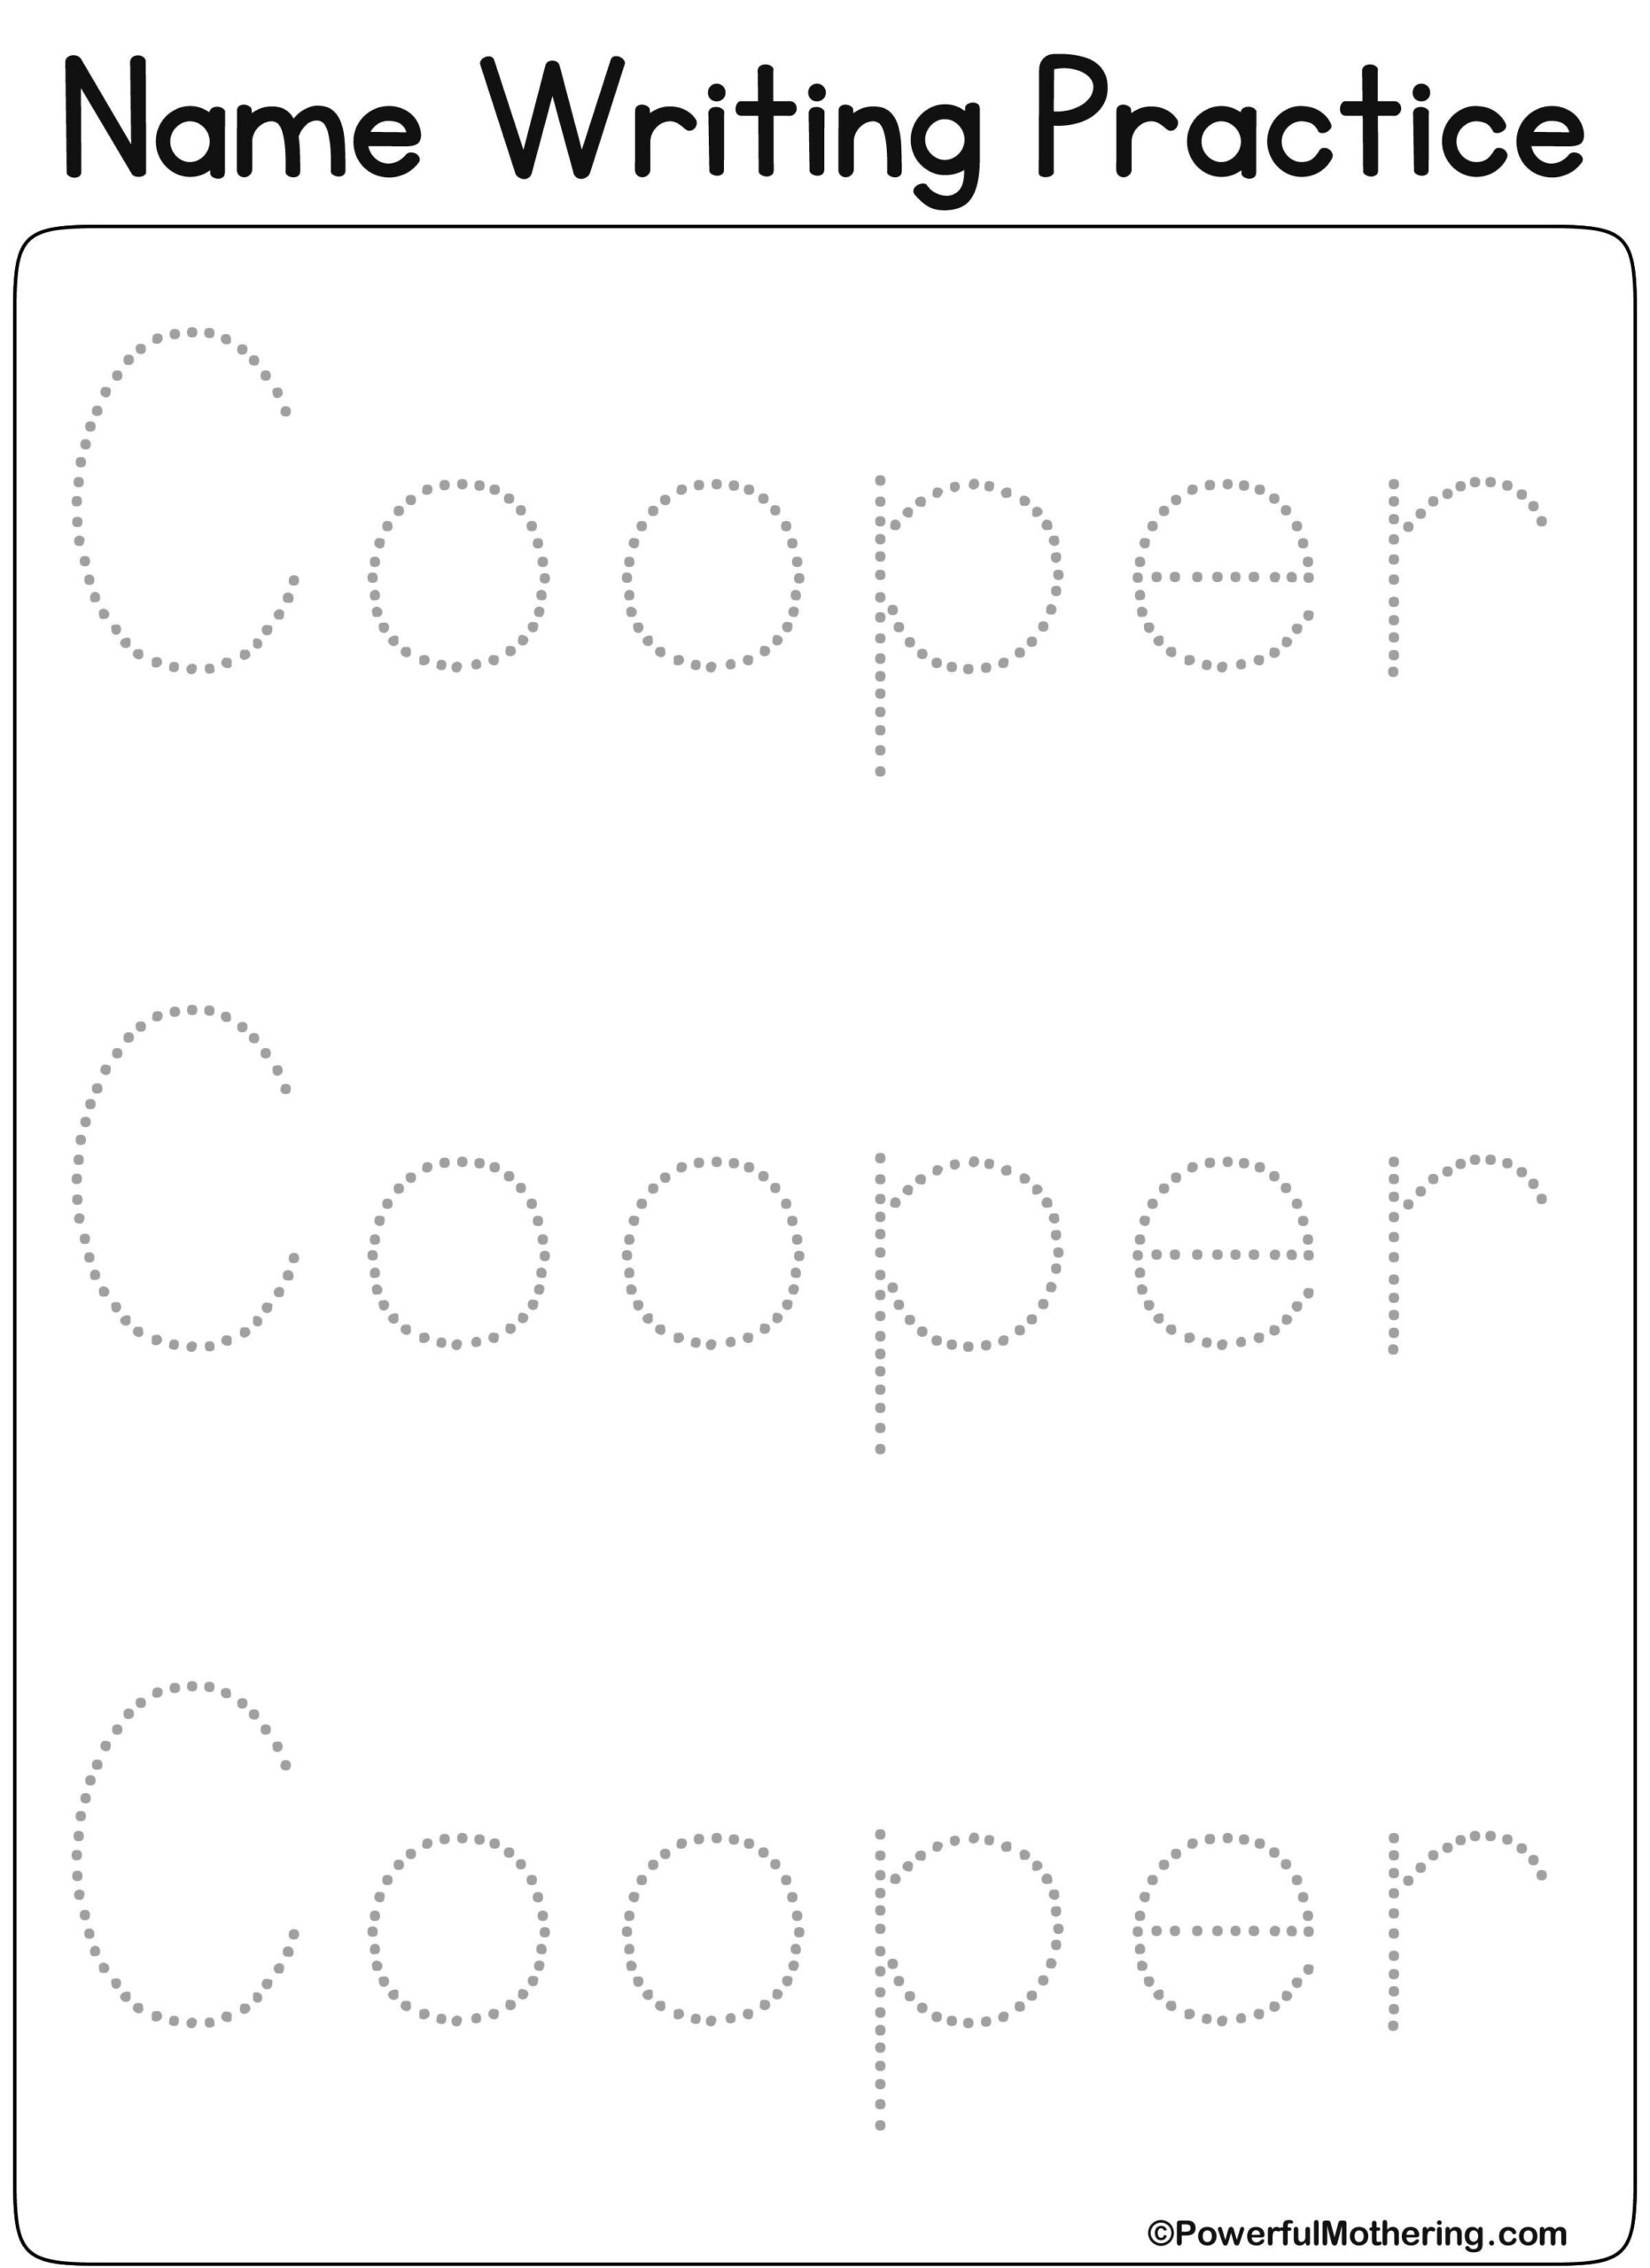 Name Tracing Worksheets To Free Download. Name Tracing